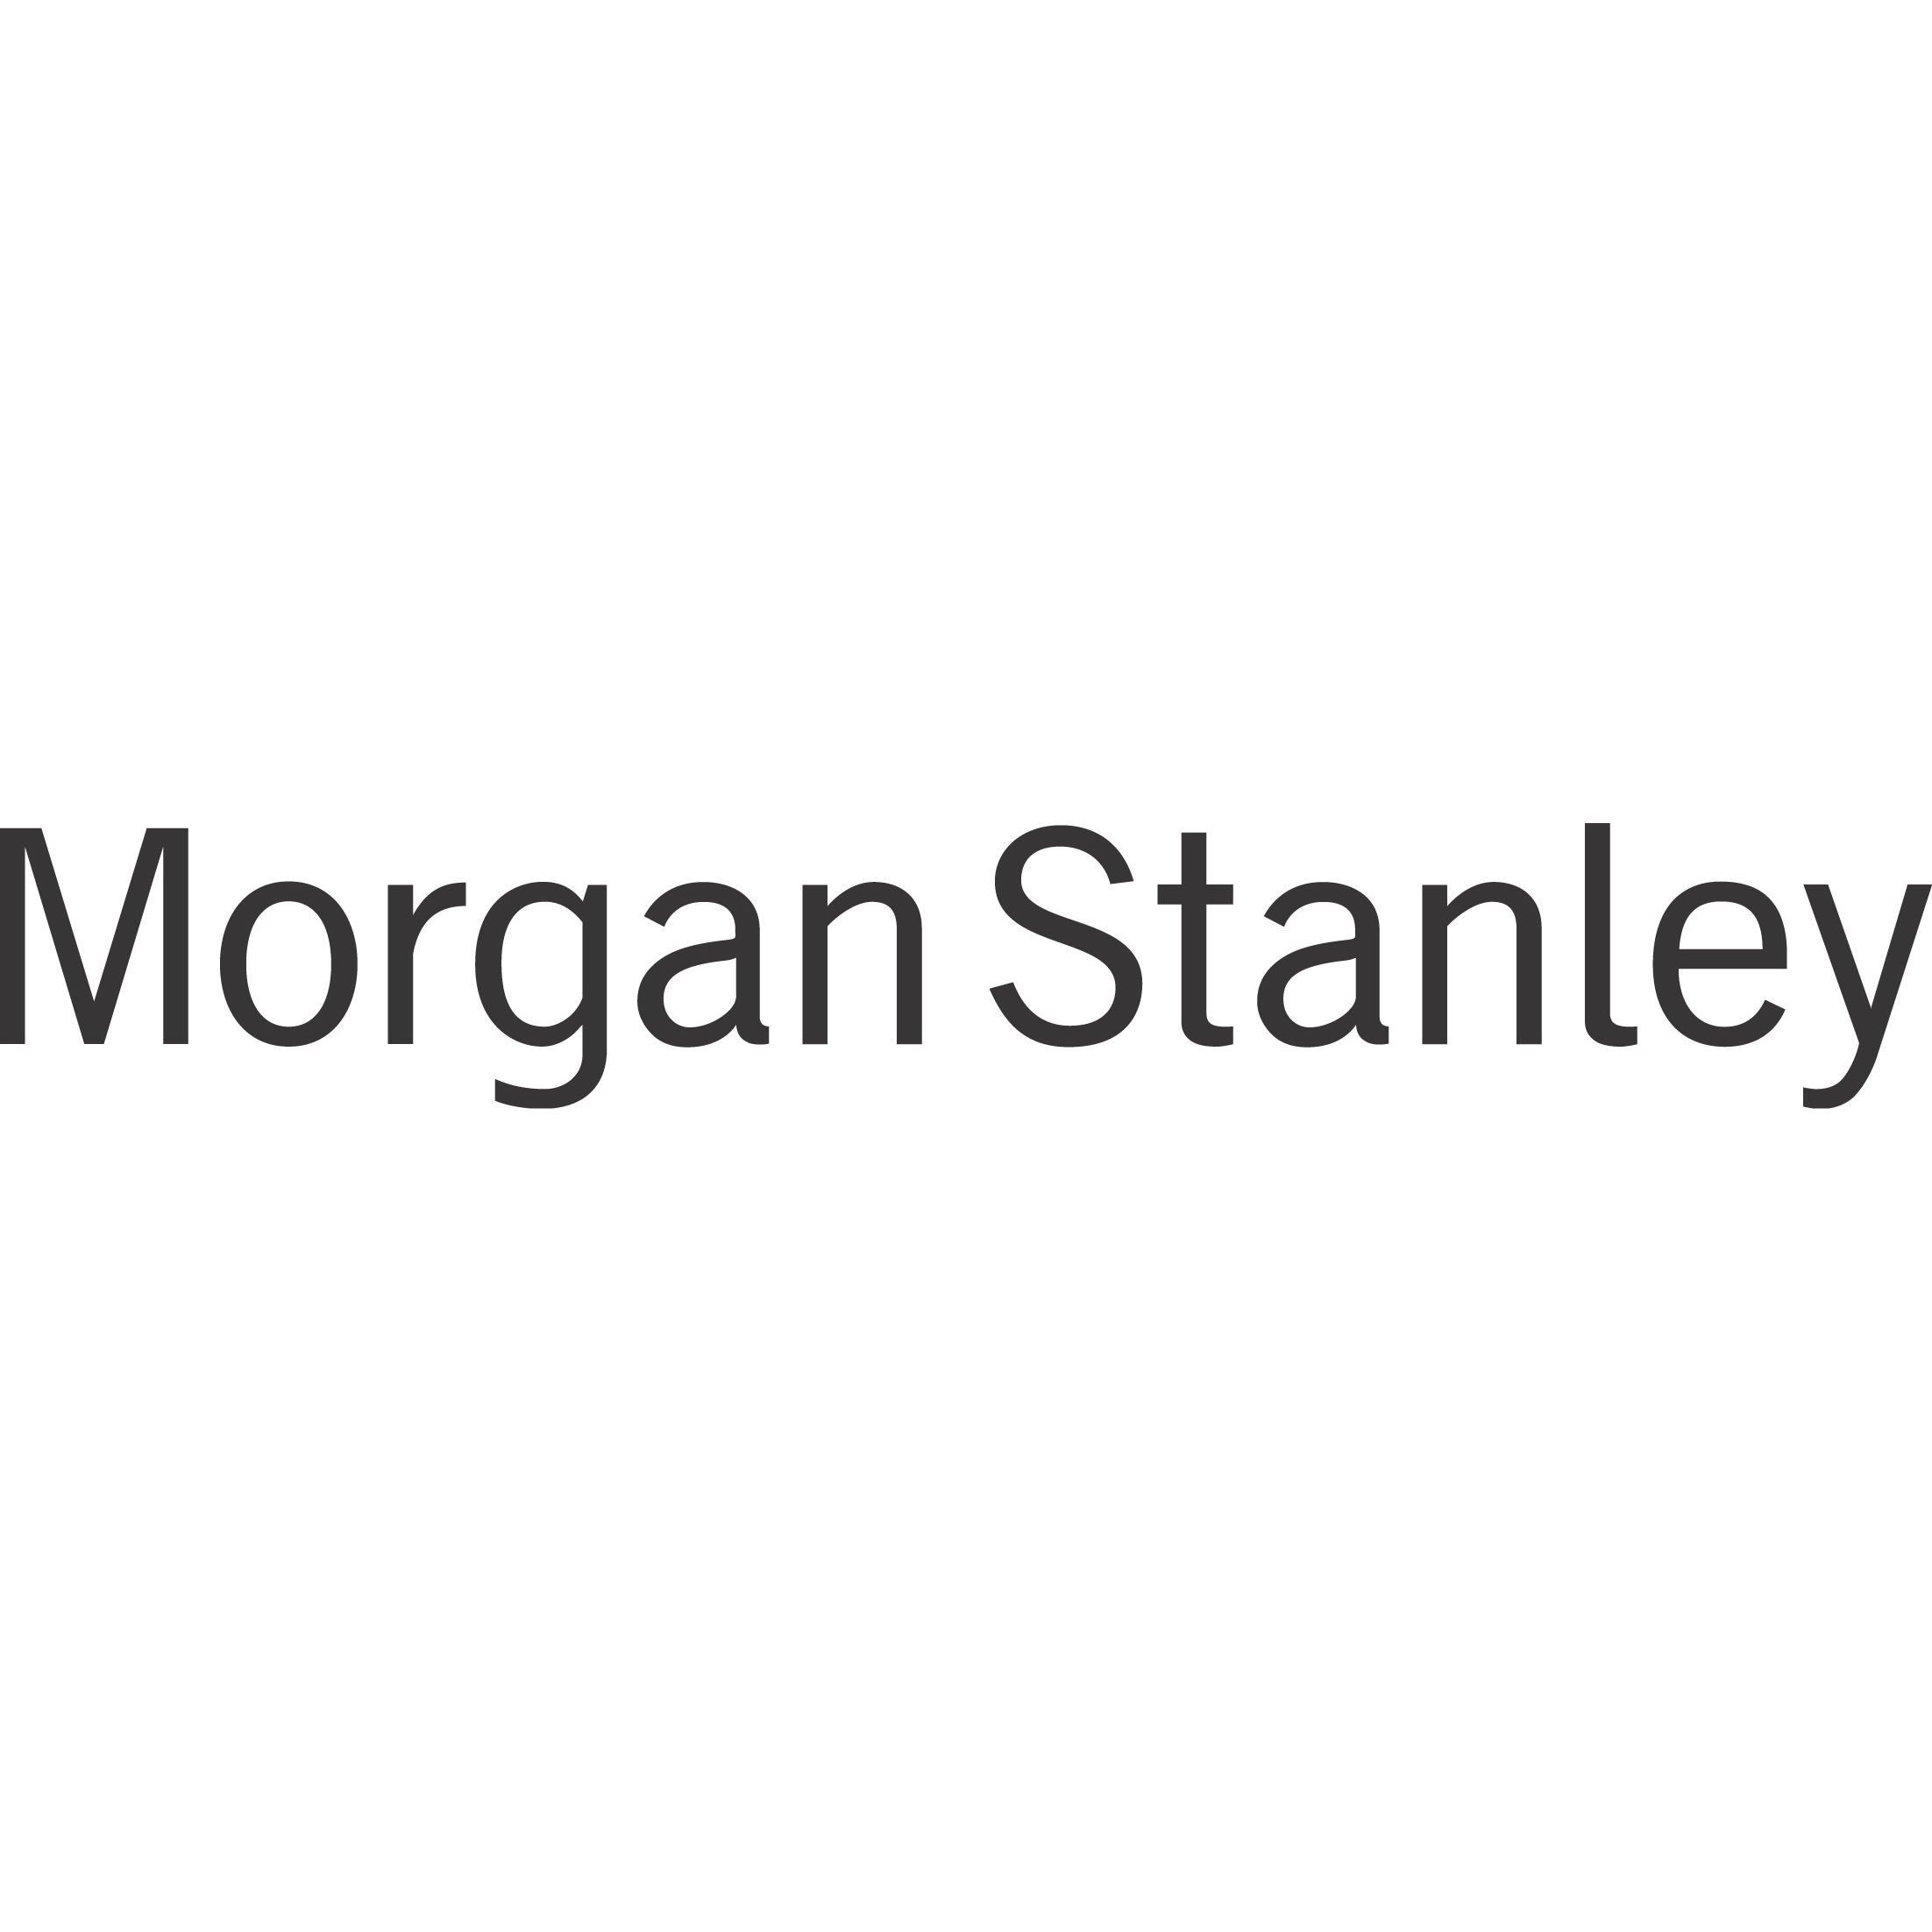 Scott McLeod - Morgan Stanley